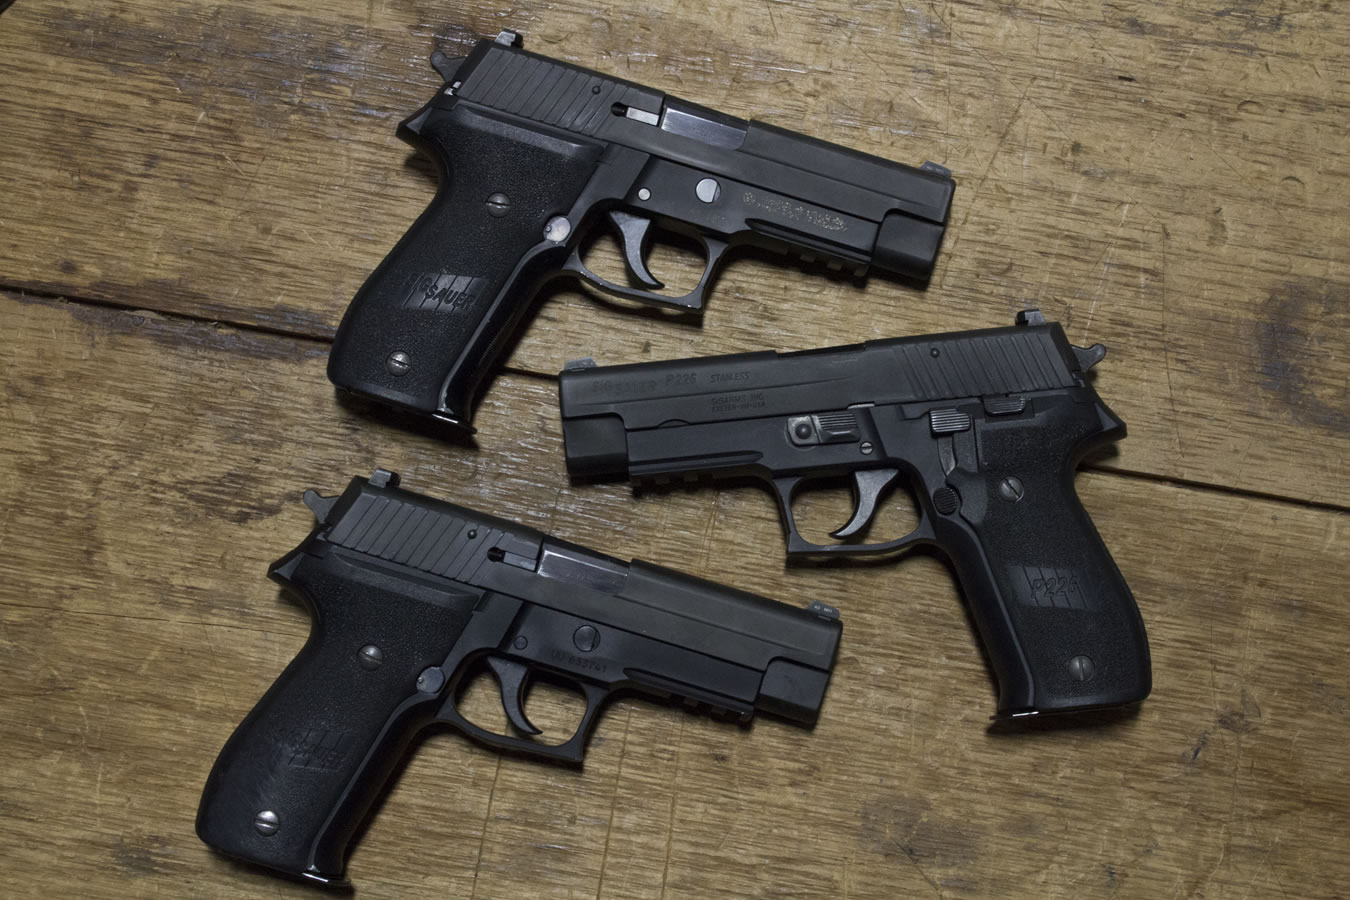 sig sauer p226r 40 s w da sa police trade ins with rail good